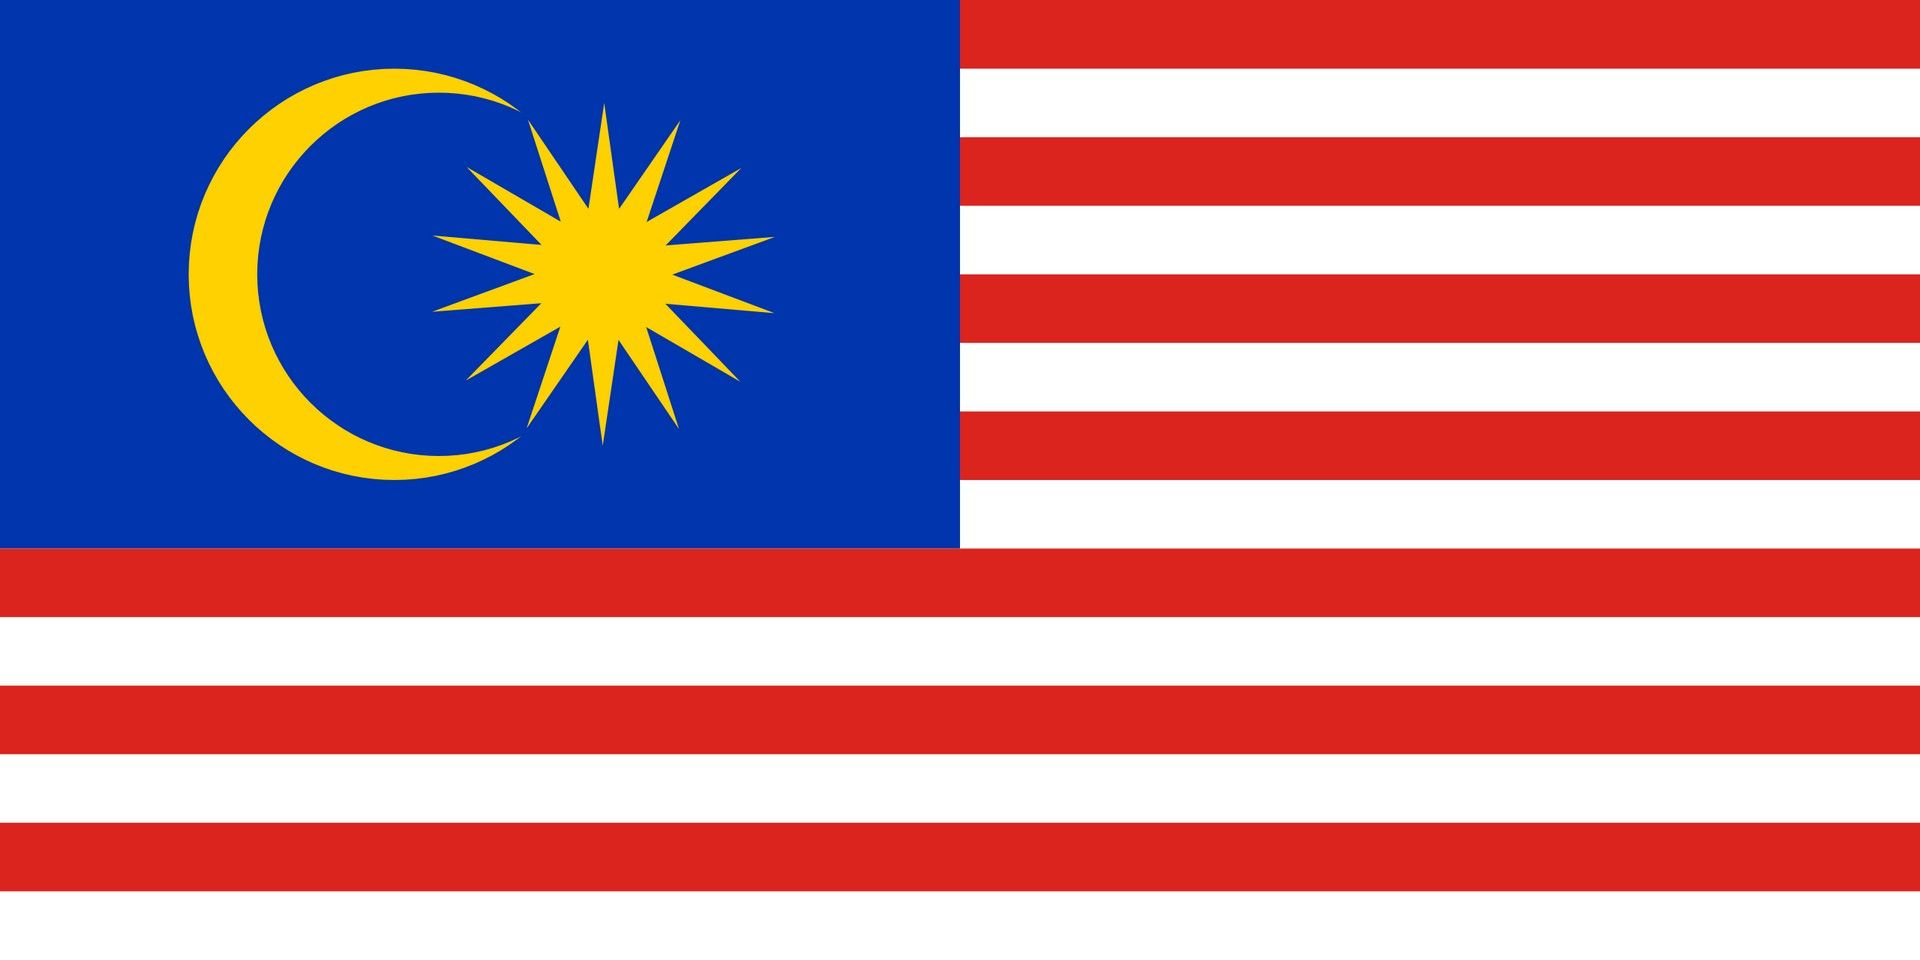 Flag of Malaysia wallpaper Flags wallpaper 1920x960